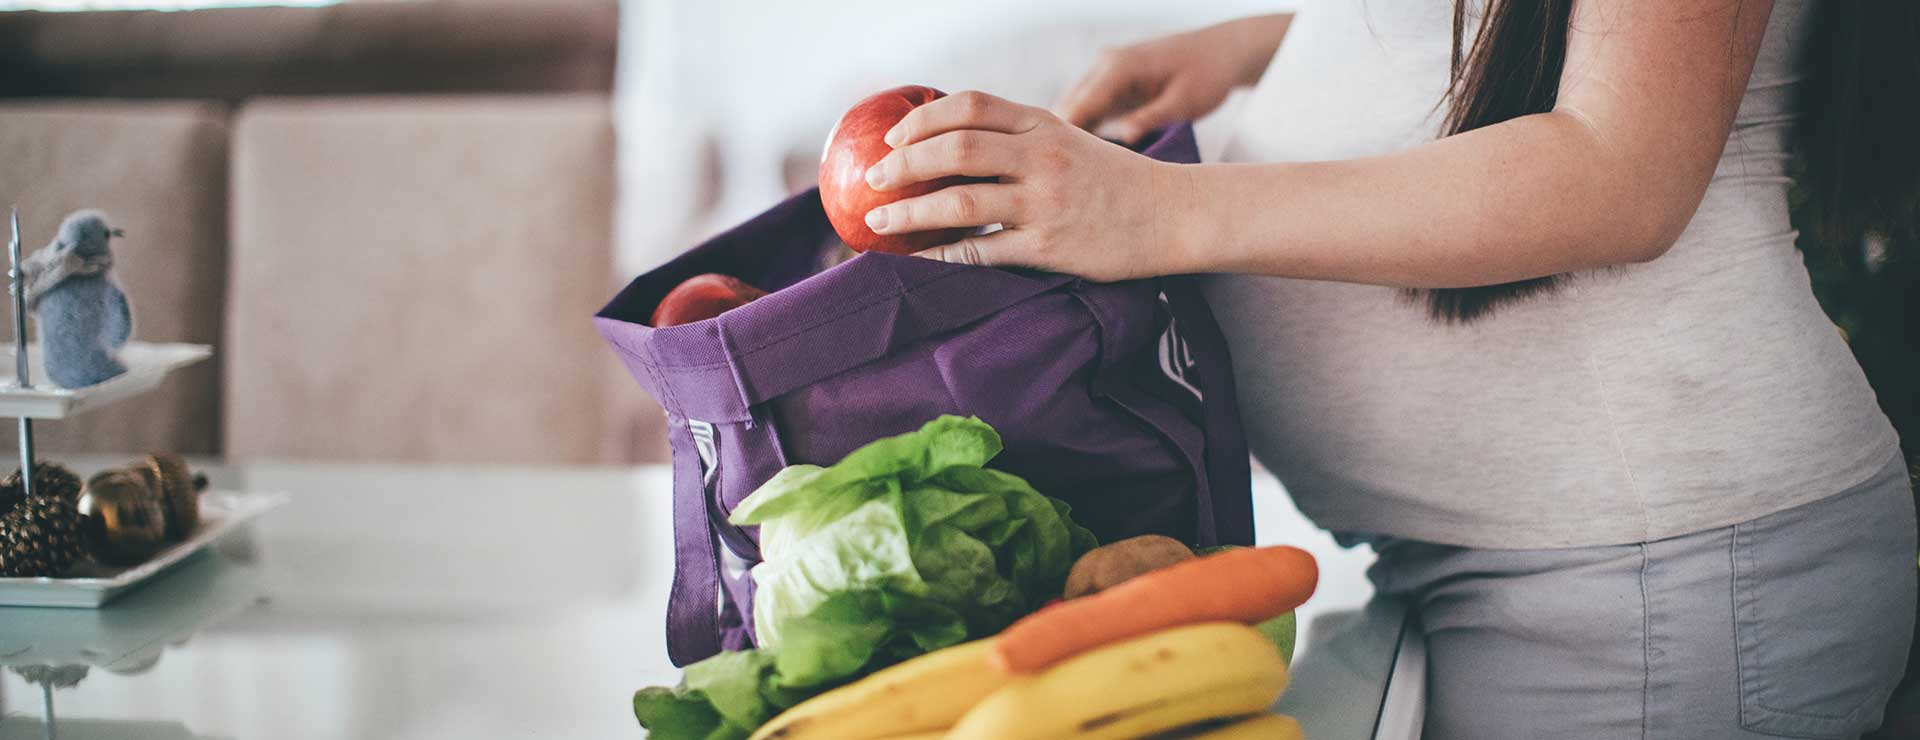 pregnant woman packing unpacking groceries